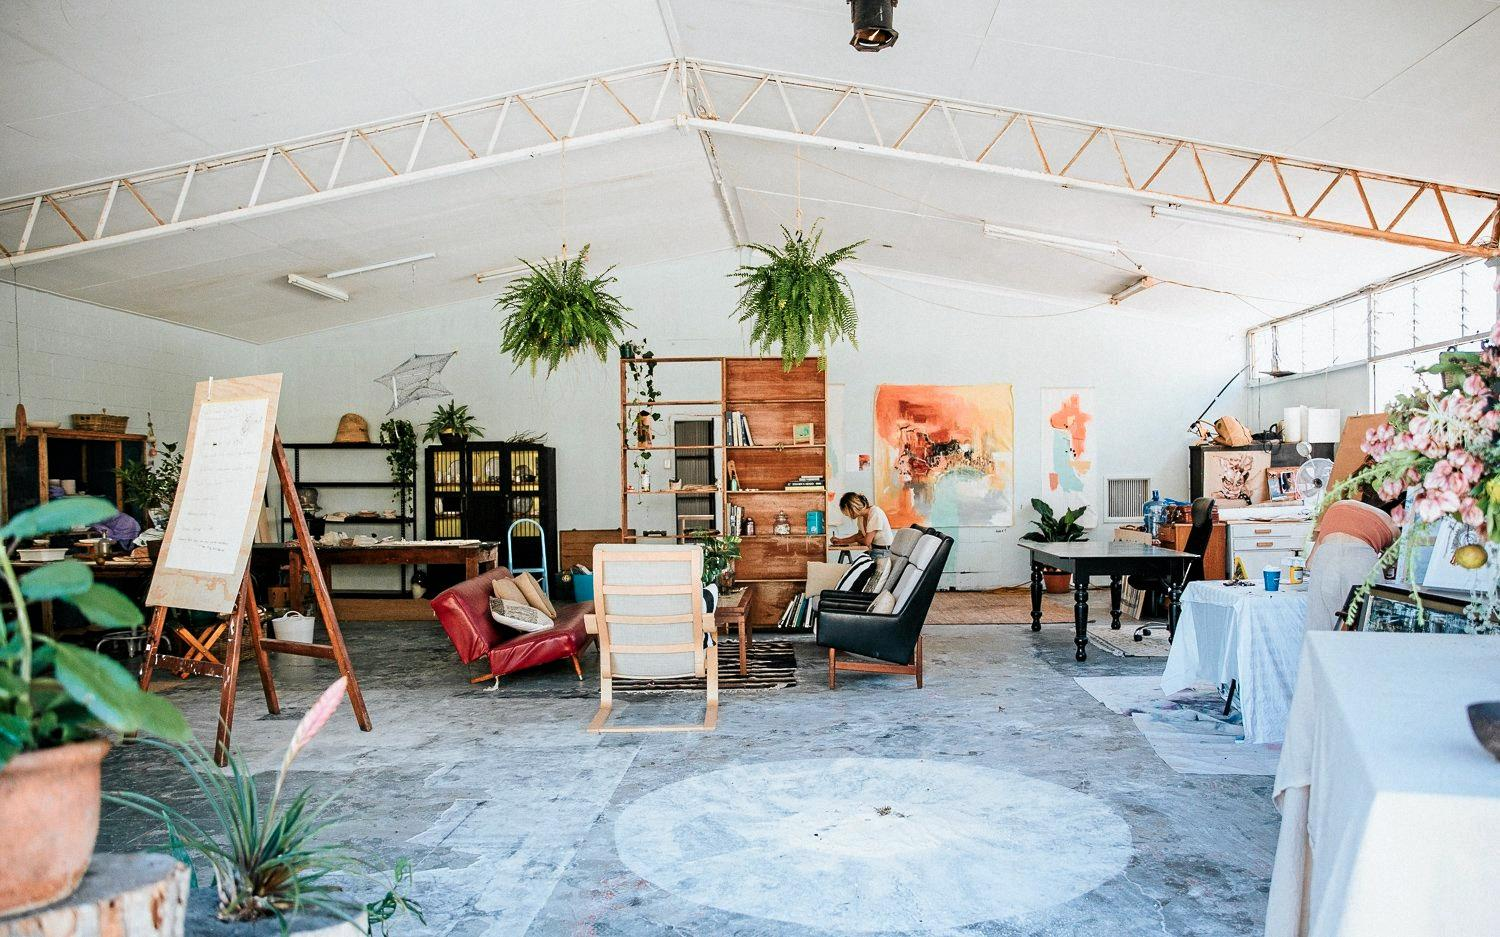 Mint Art House is the Gold Coast's newest artist-run studio, gallery and event space, hosting art classes, workshops and immersive art events and open to the public.